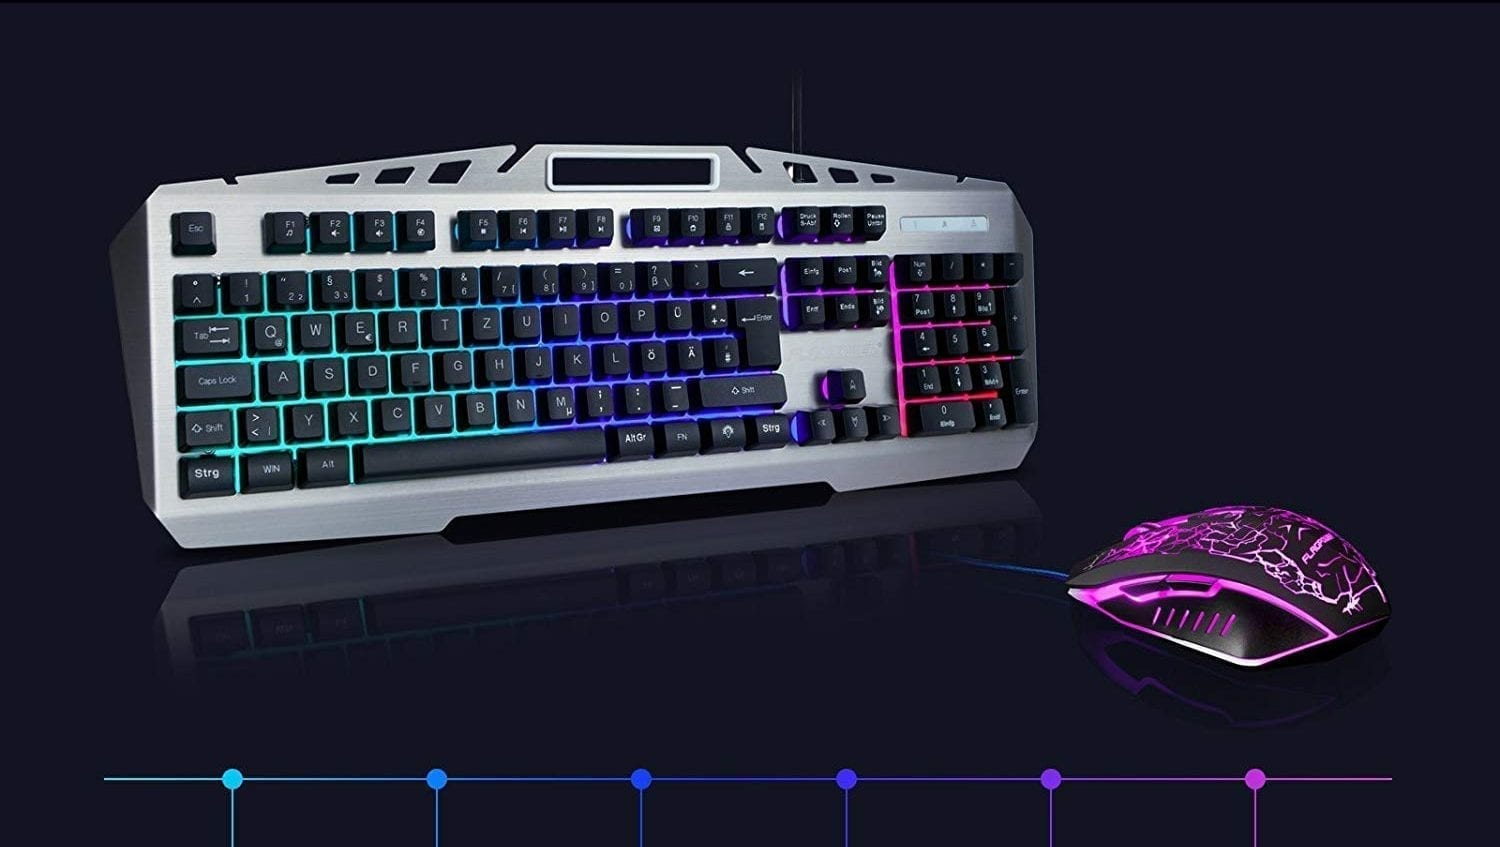 Top 10 Best Gaming Keyboard and Mouse in 2019